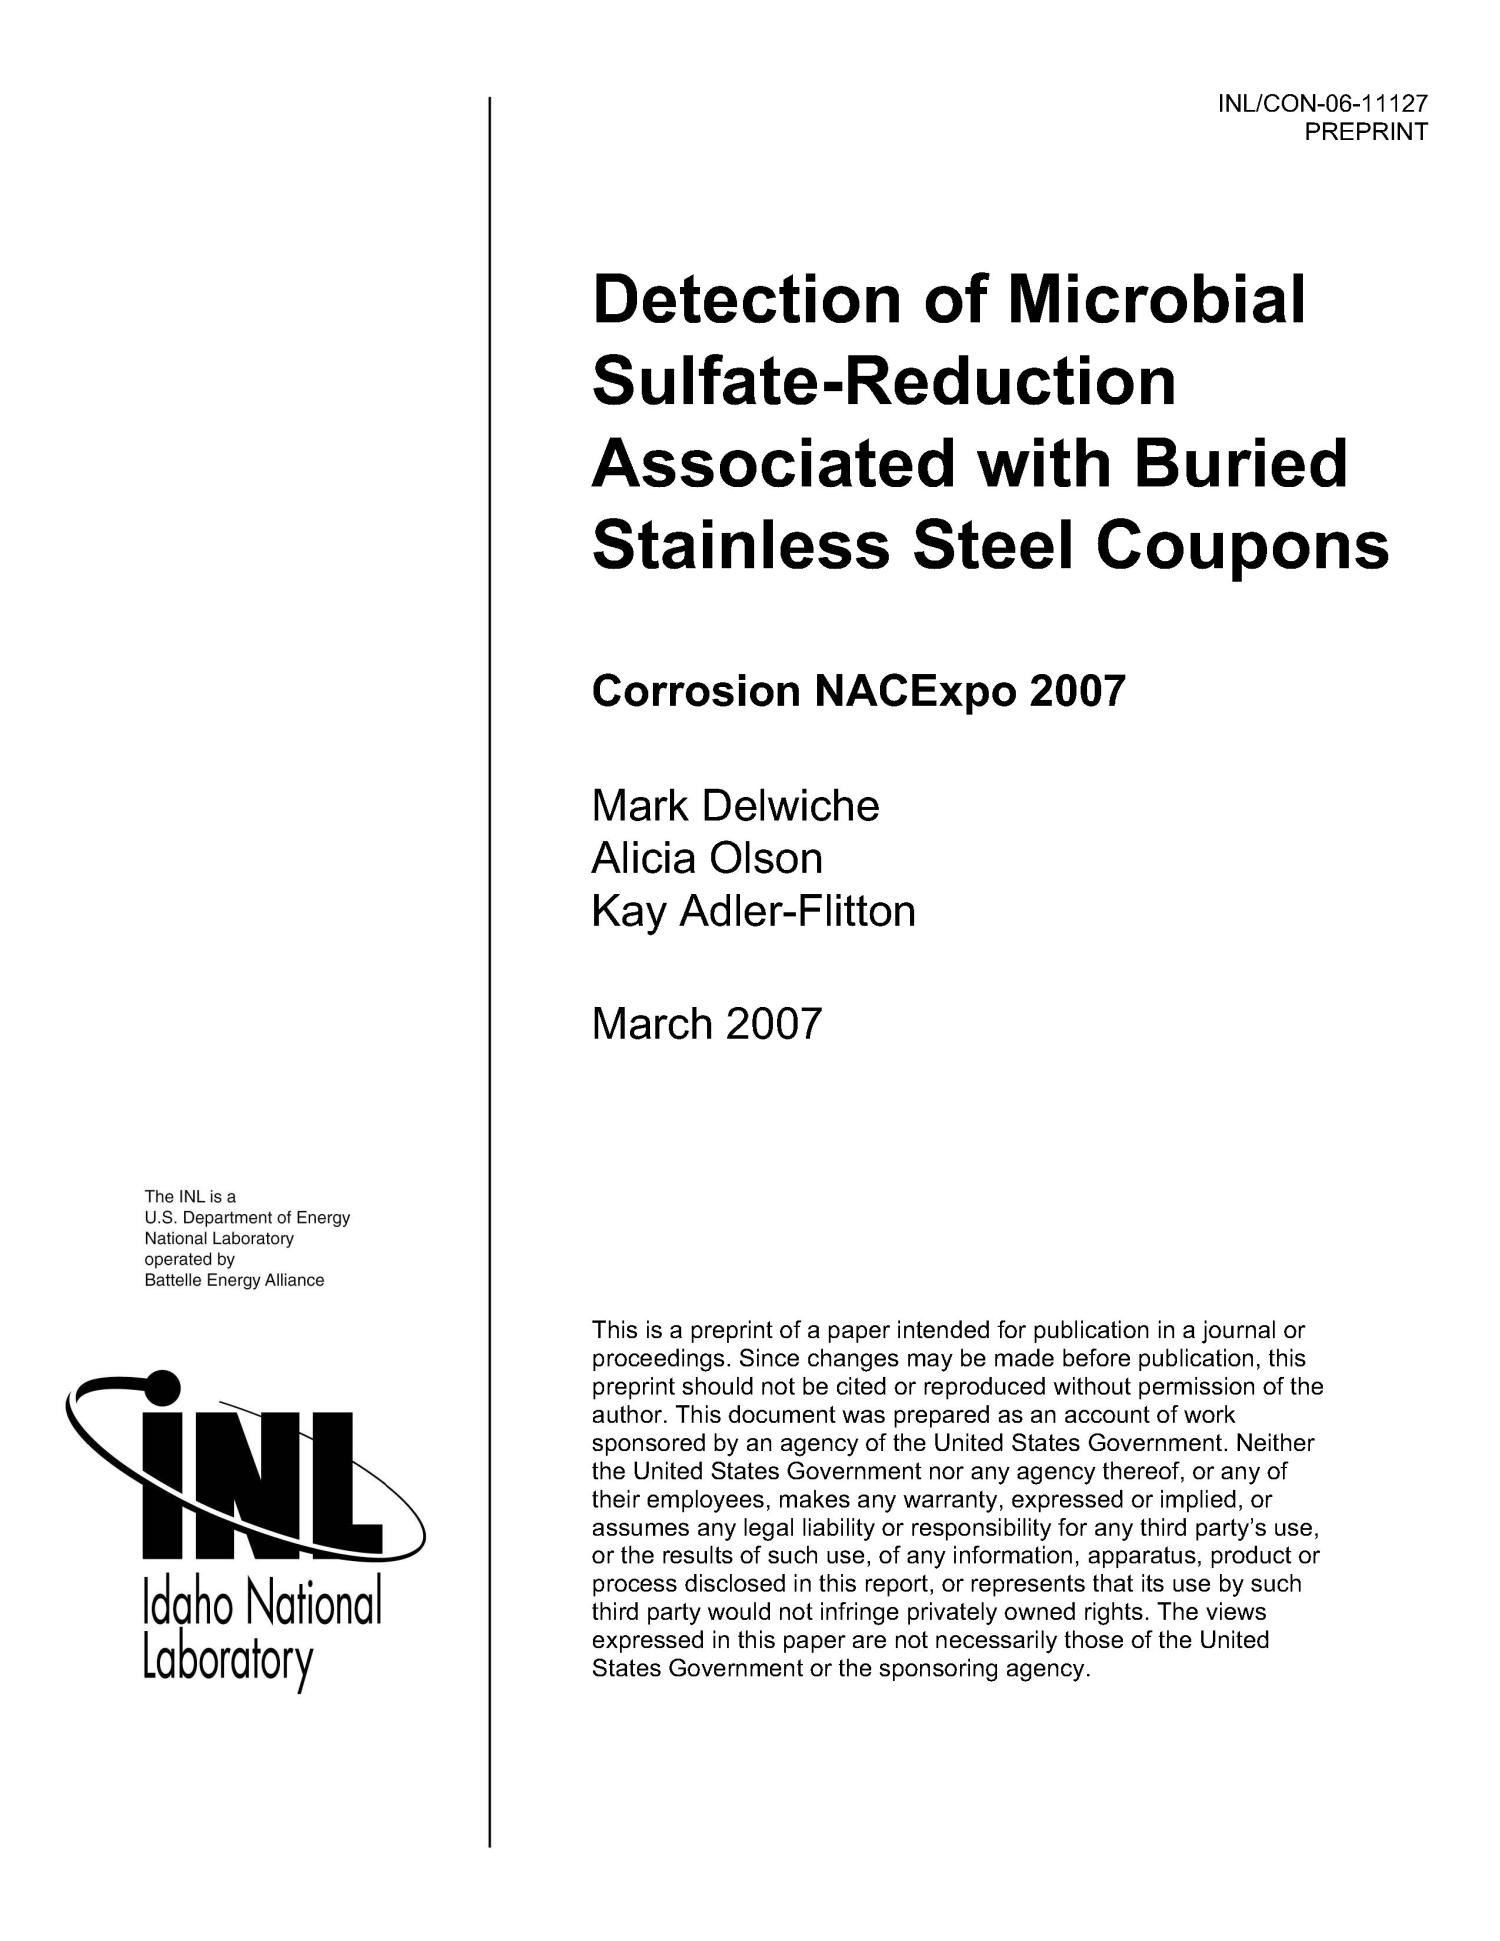 Detection of Microbial sulfate-reduction associated with buried stainless steel coupons                                                                                                      [Sequence #]: 1 of 12